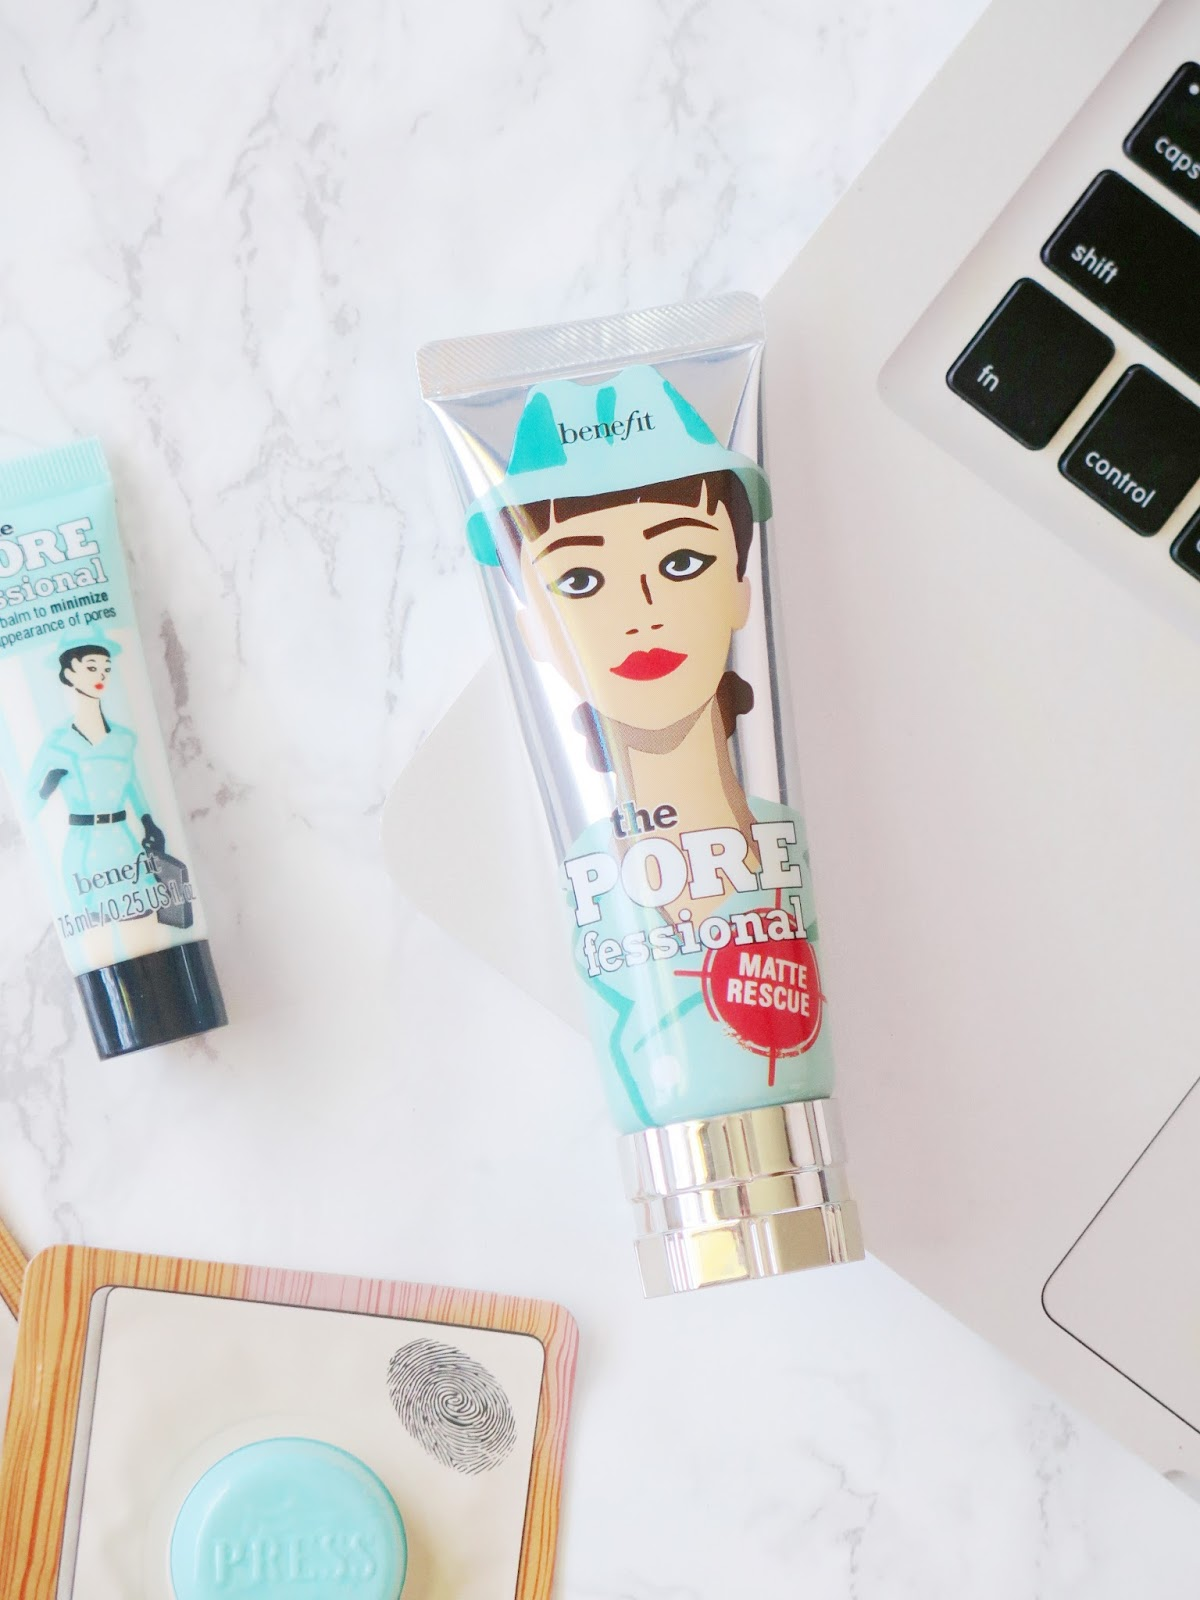 To The Rescue | Benefit Cosmetics POREfessional Matte Rescue Invisible Finish Mattifying Gel | Review & Swatches | labellesirene.ca